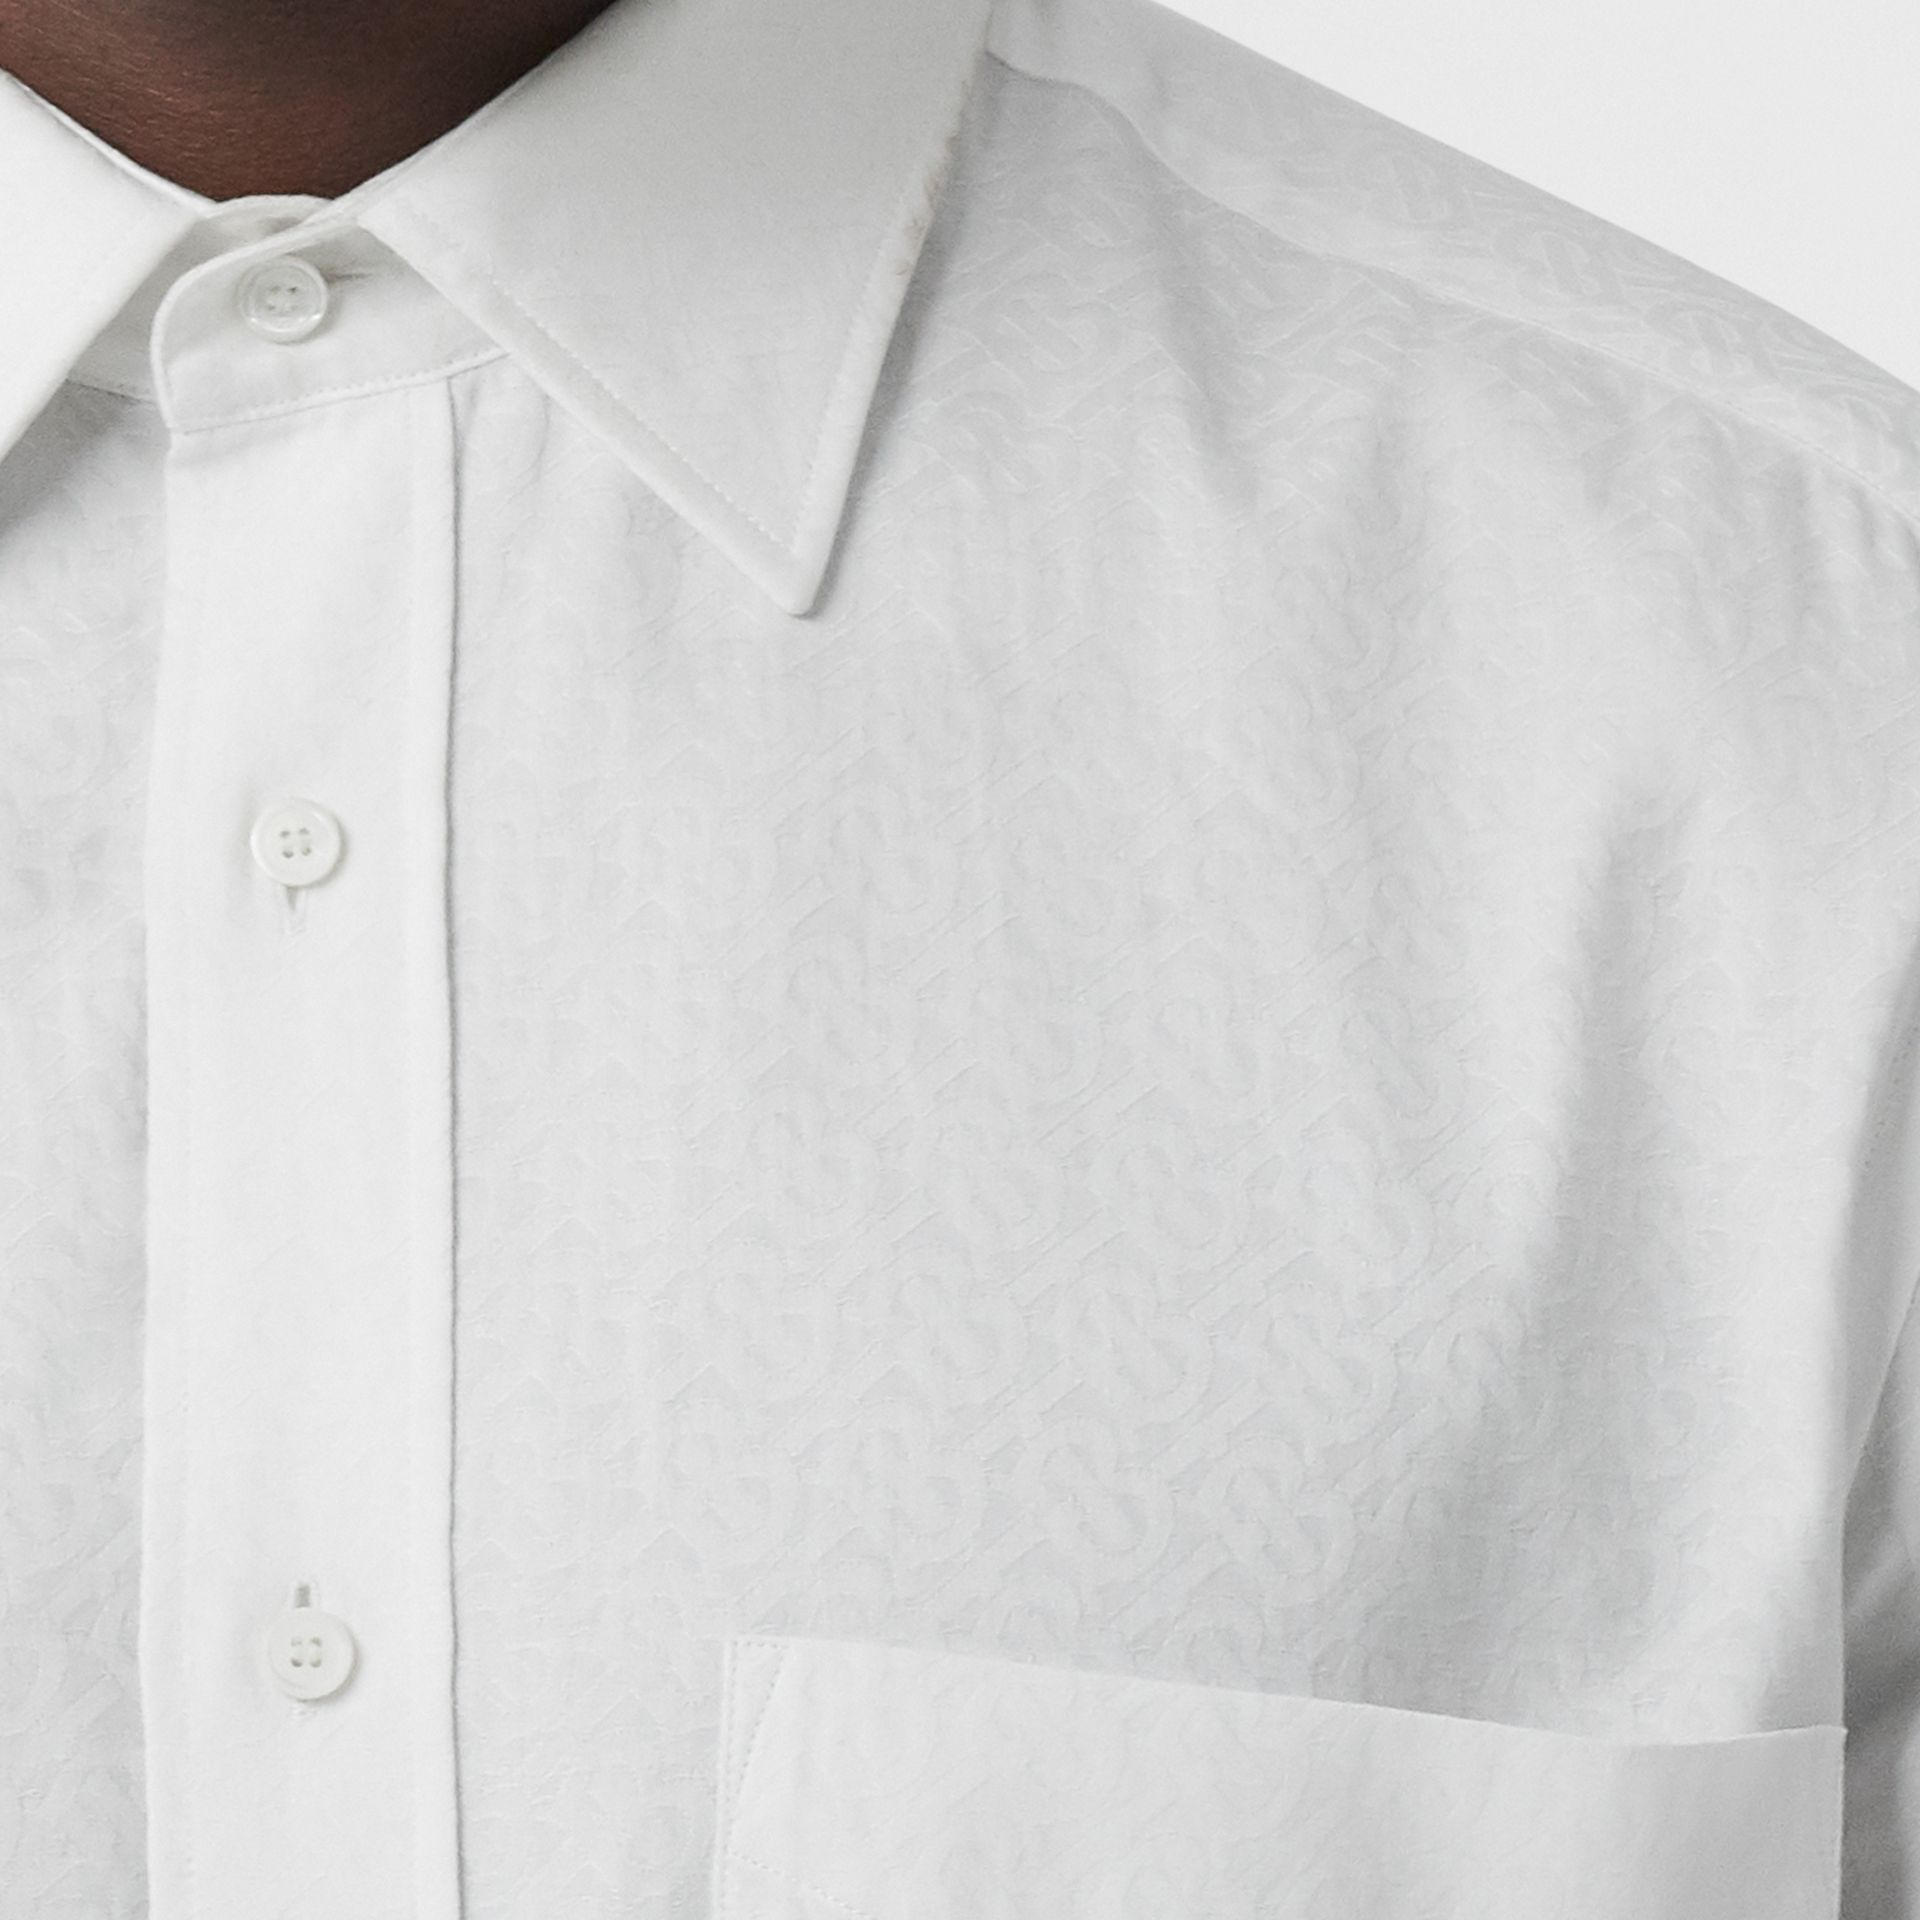 Classic Fit Monogram Cotton Jacquard Shirt in White - Men | Burberry - gallery image 4